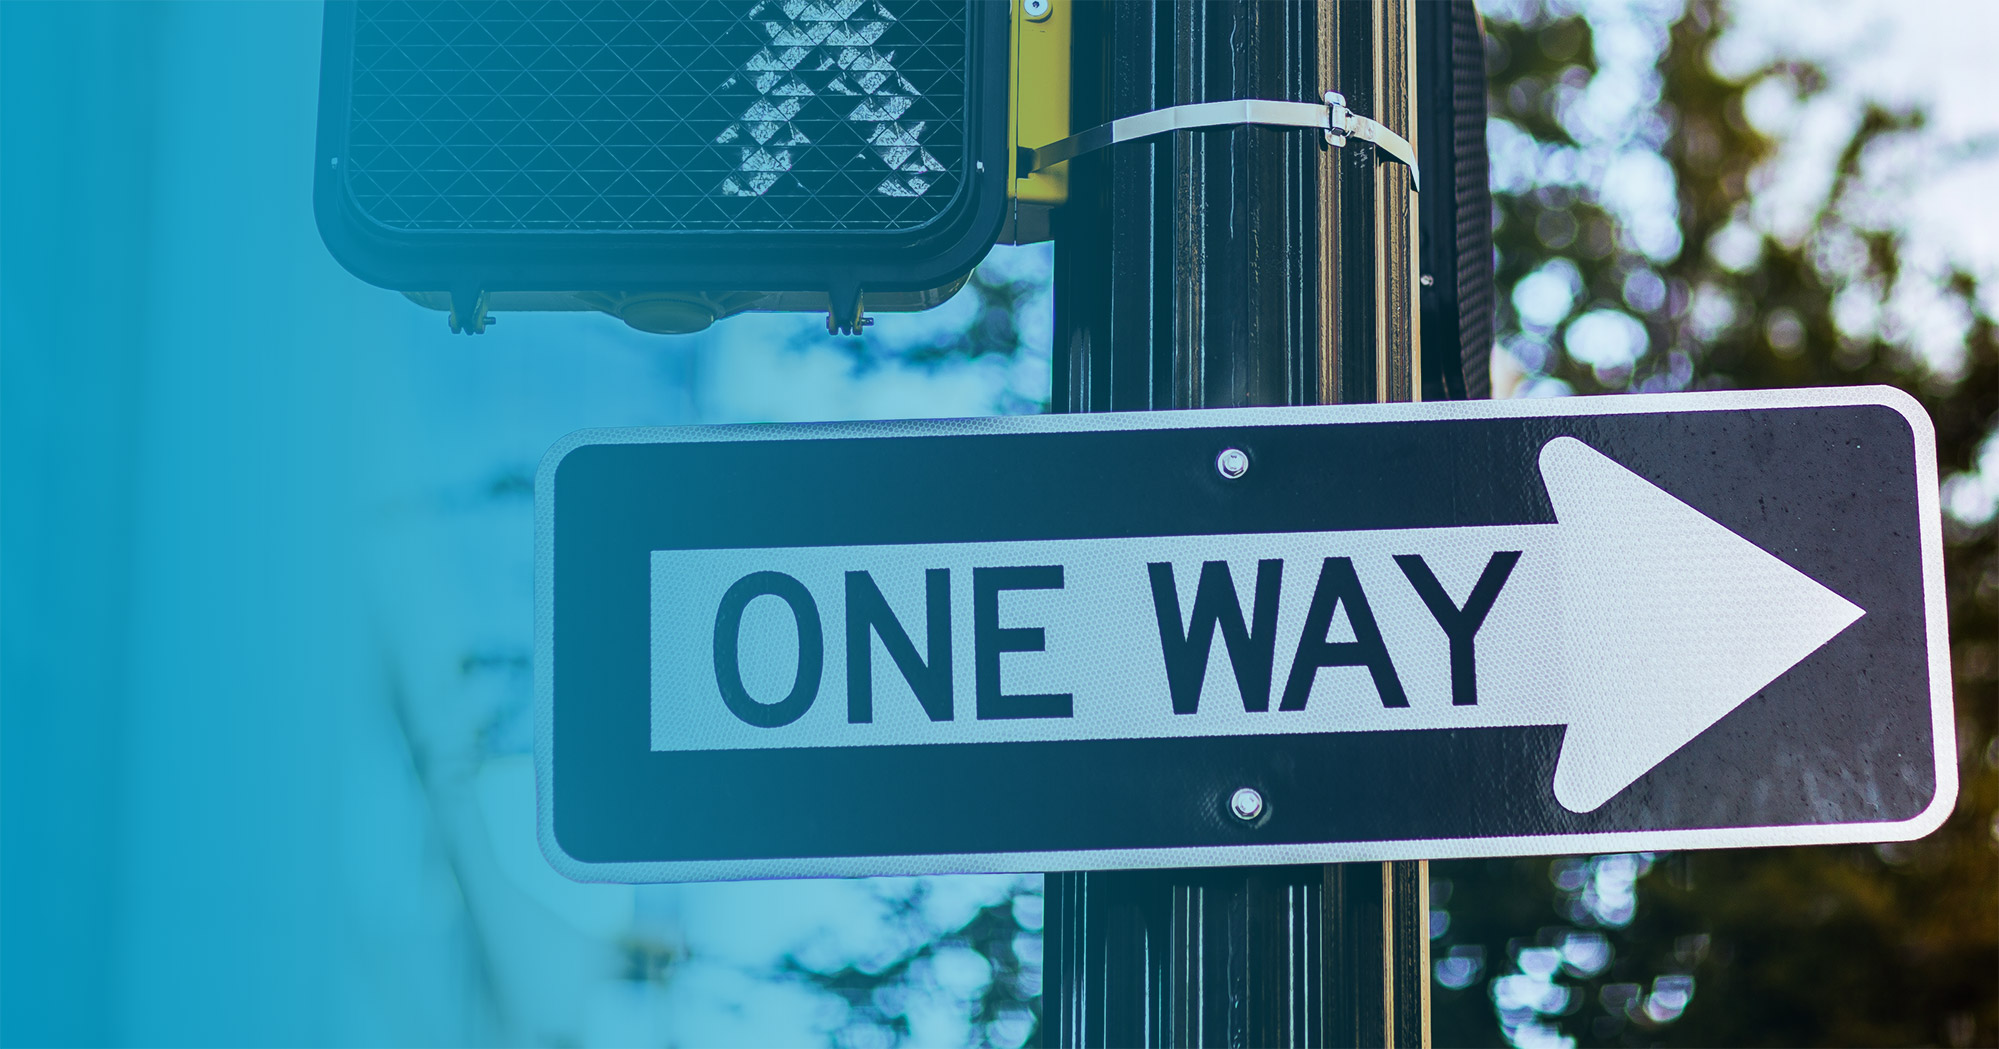 """One way"" arrow street sign pointing to right"